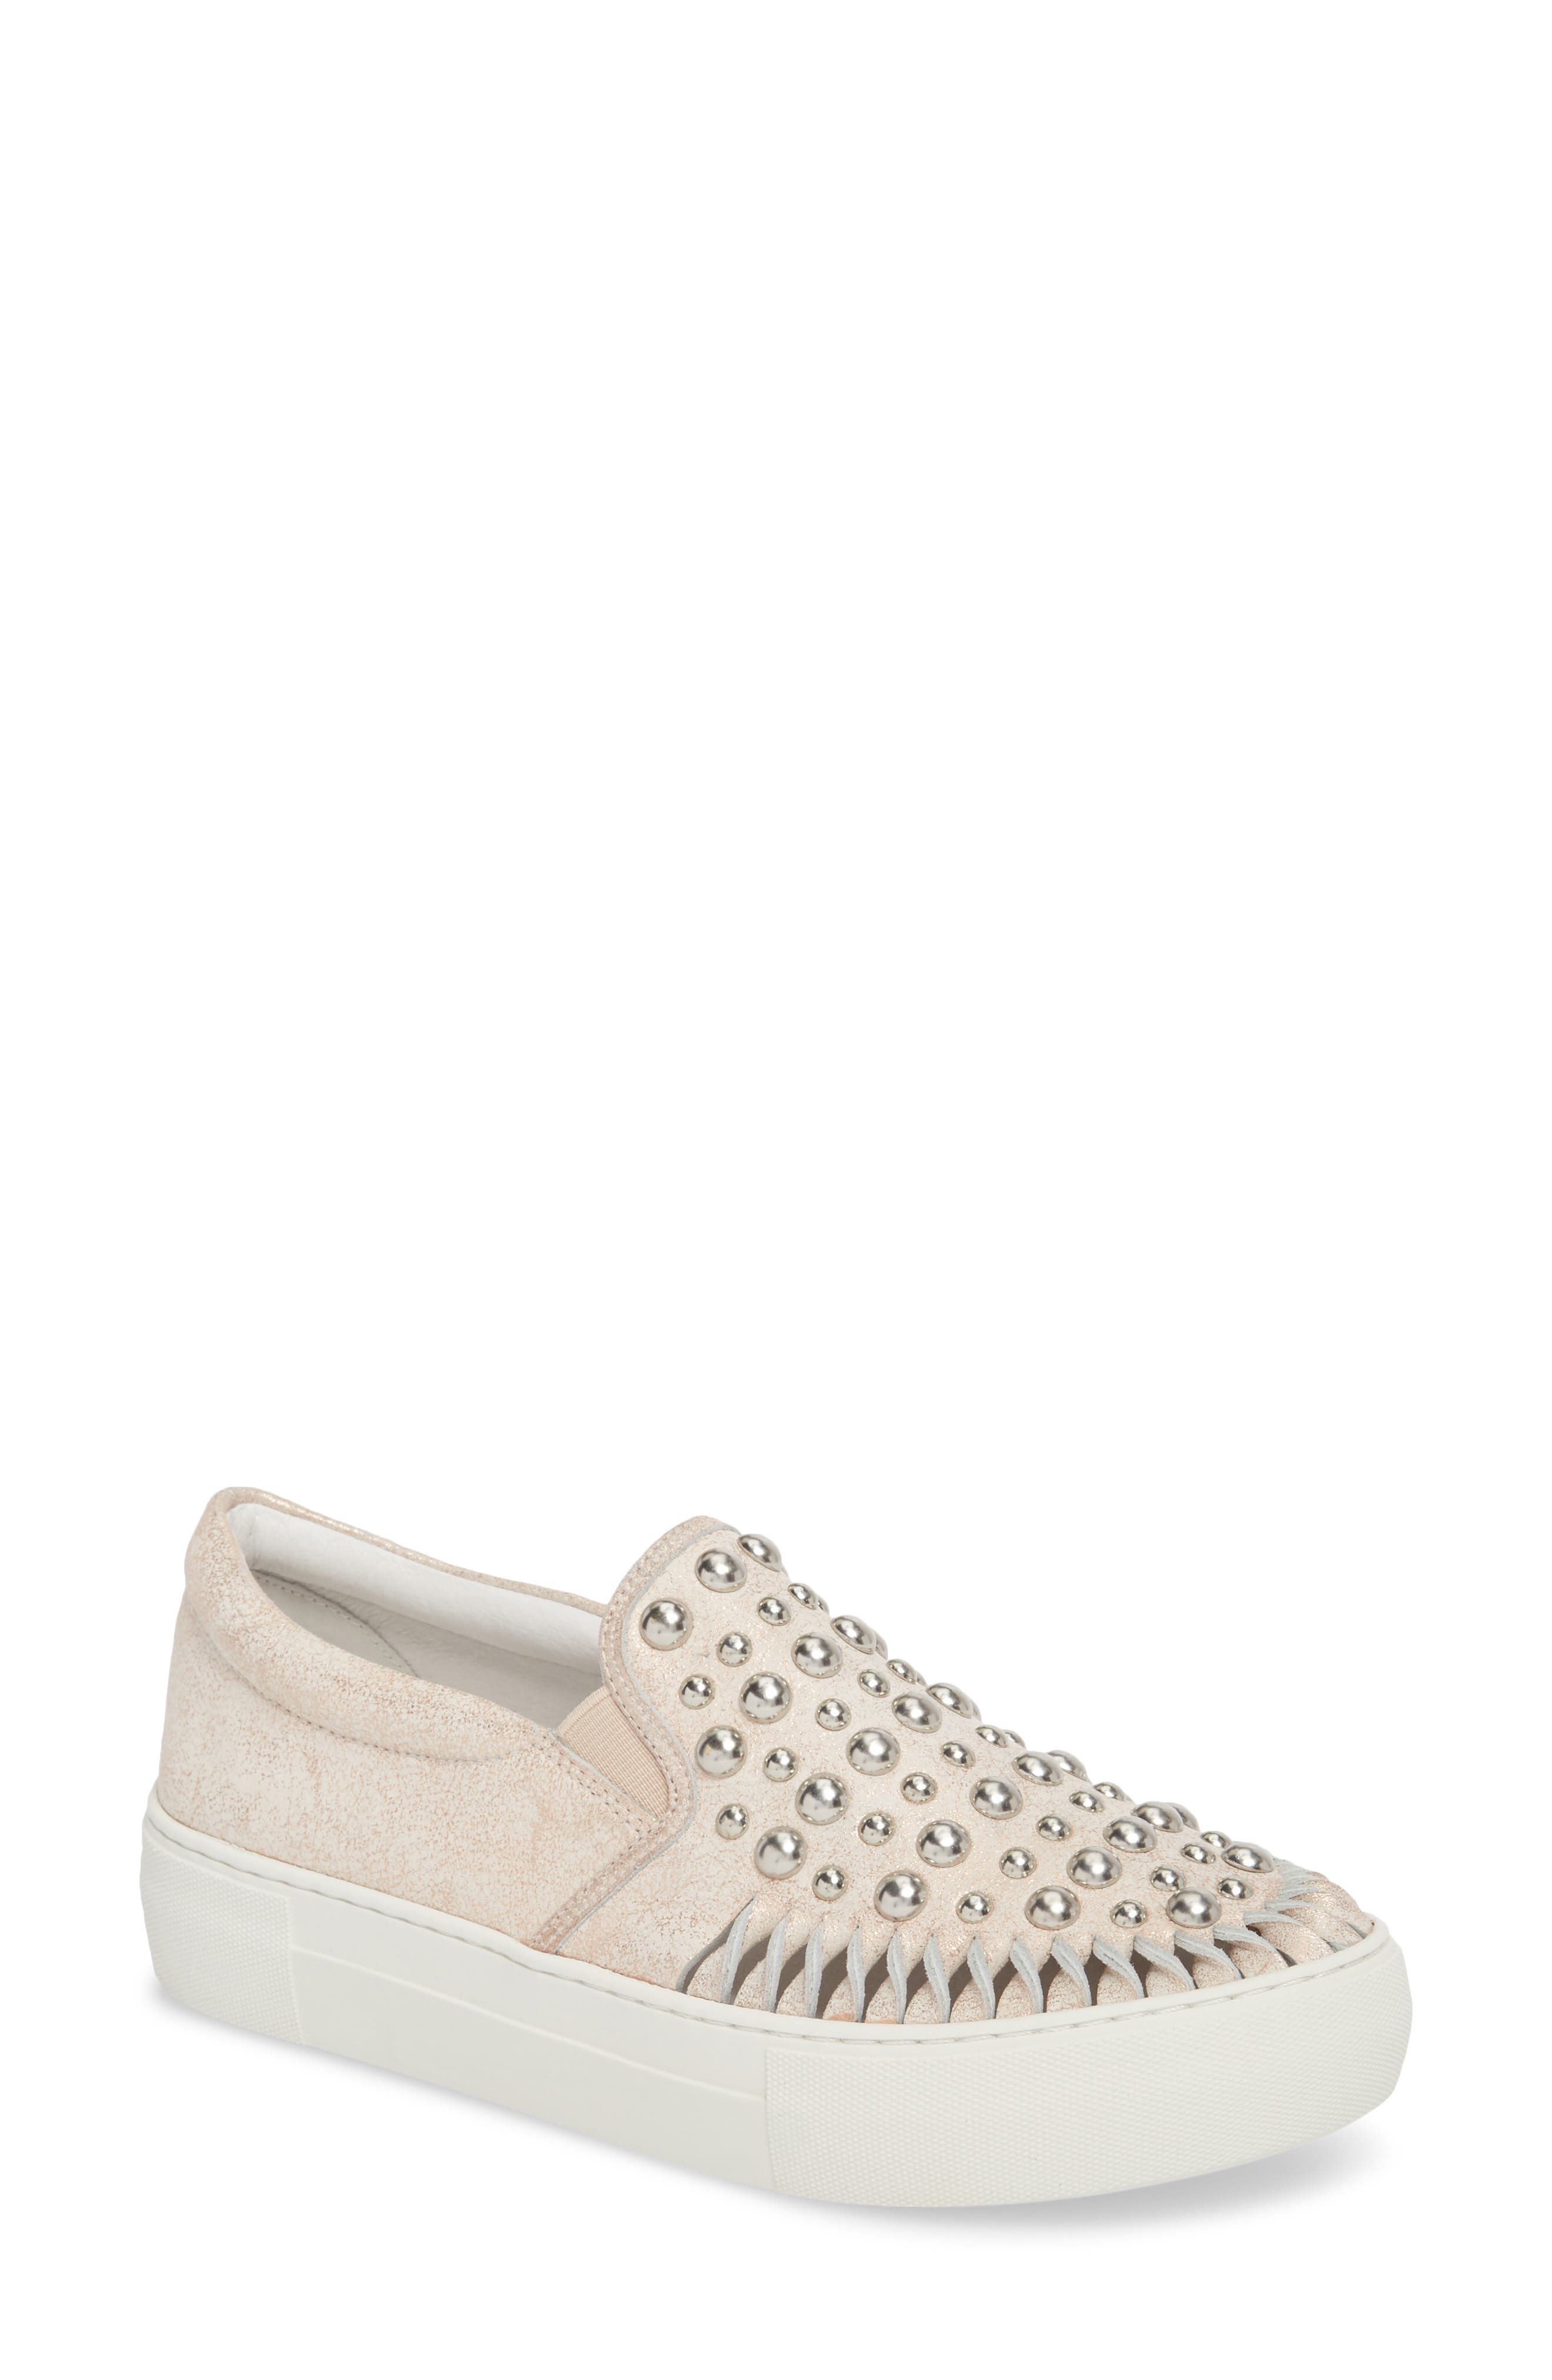 AZT Studded Slip-On Sneaker,                         Main,                         color, Soft Pink Metallic Leather